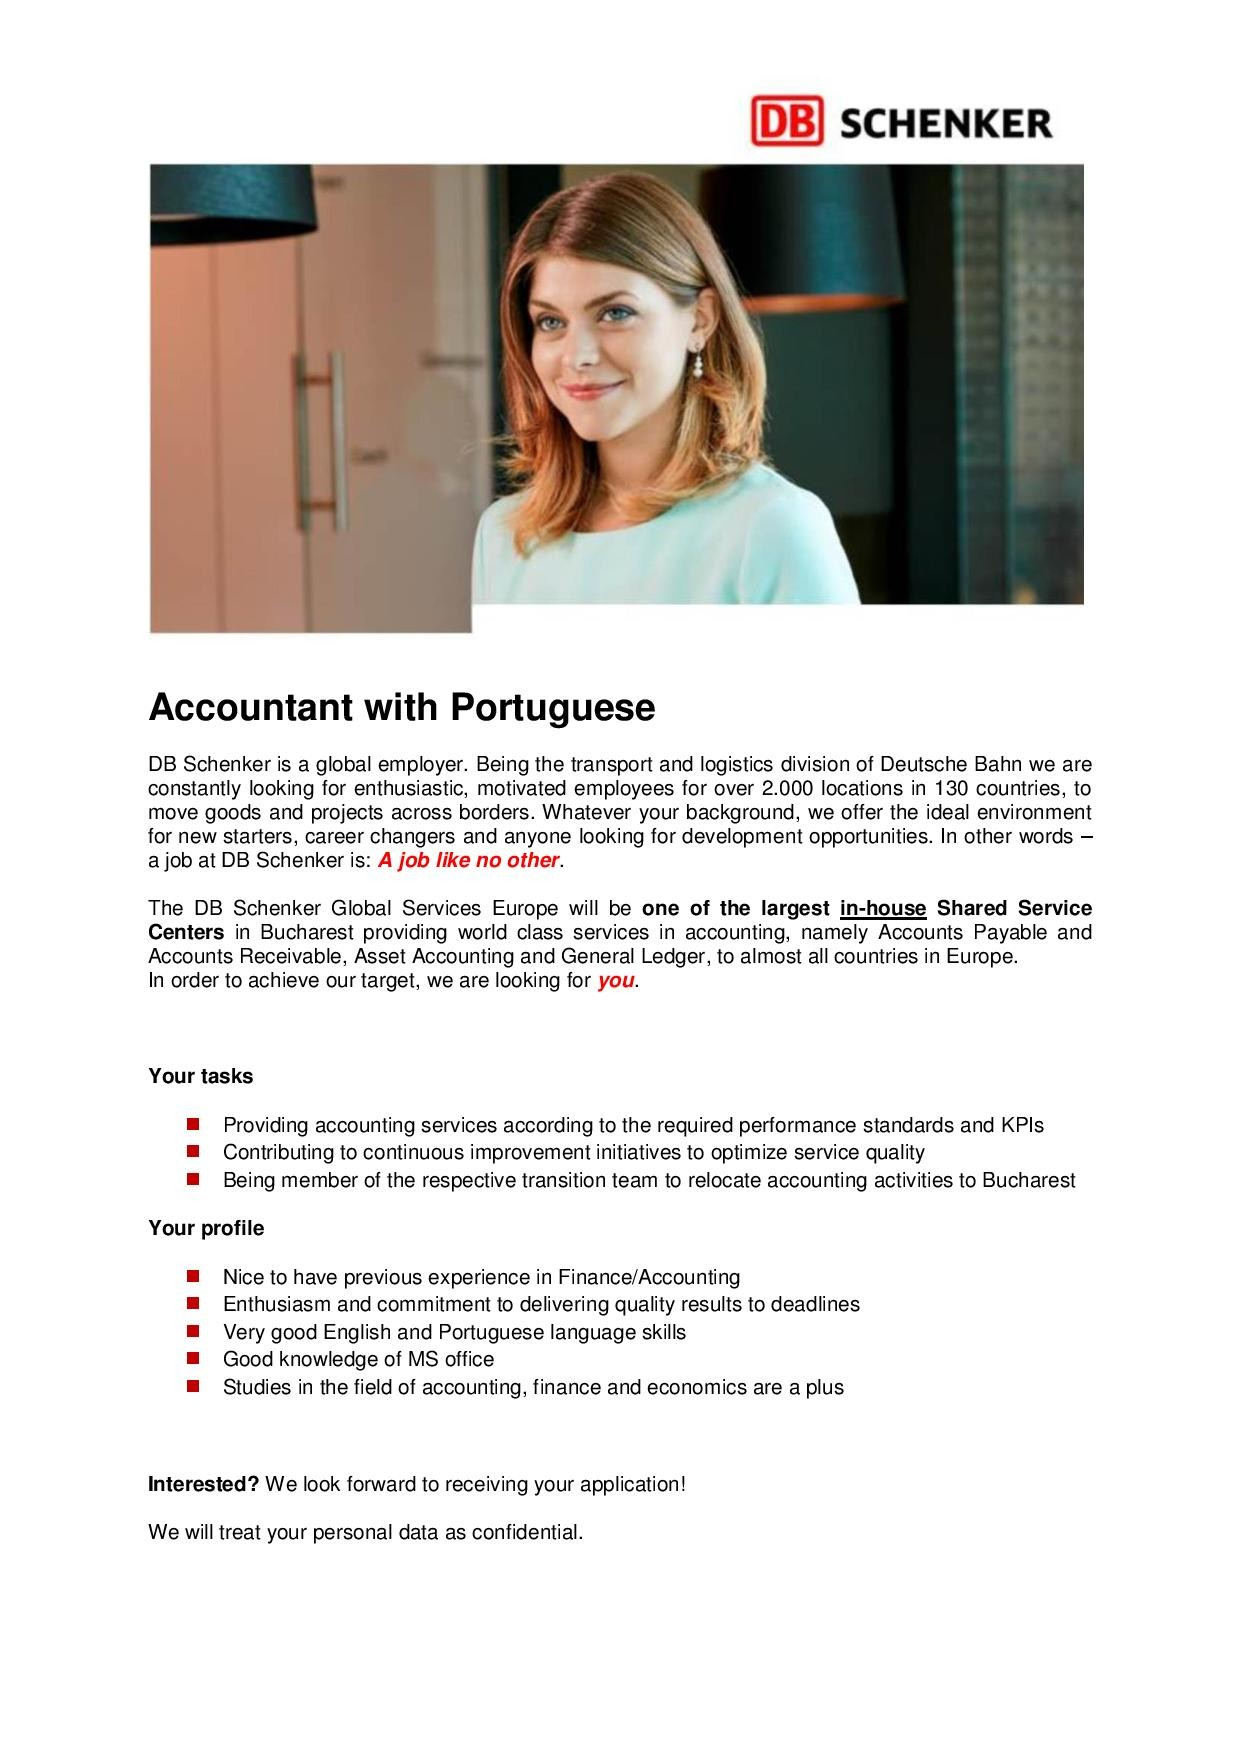 Job Add Accountant with Portuguese page-001 (1)